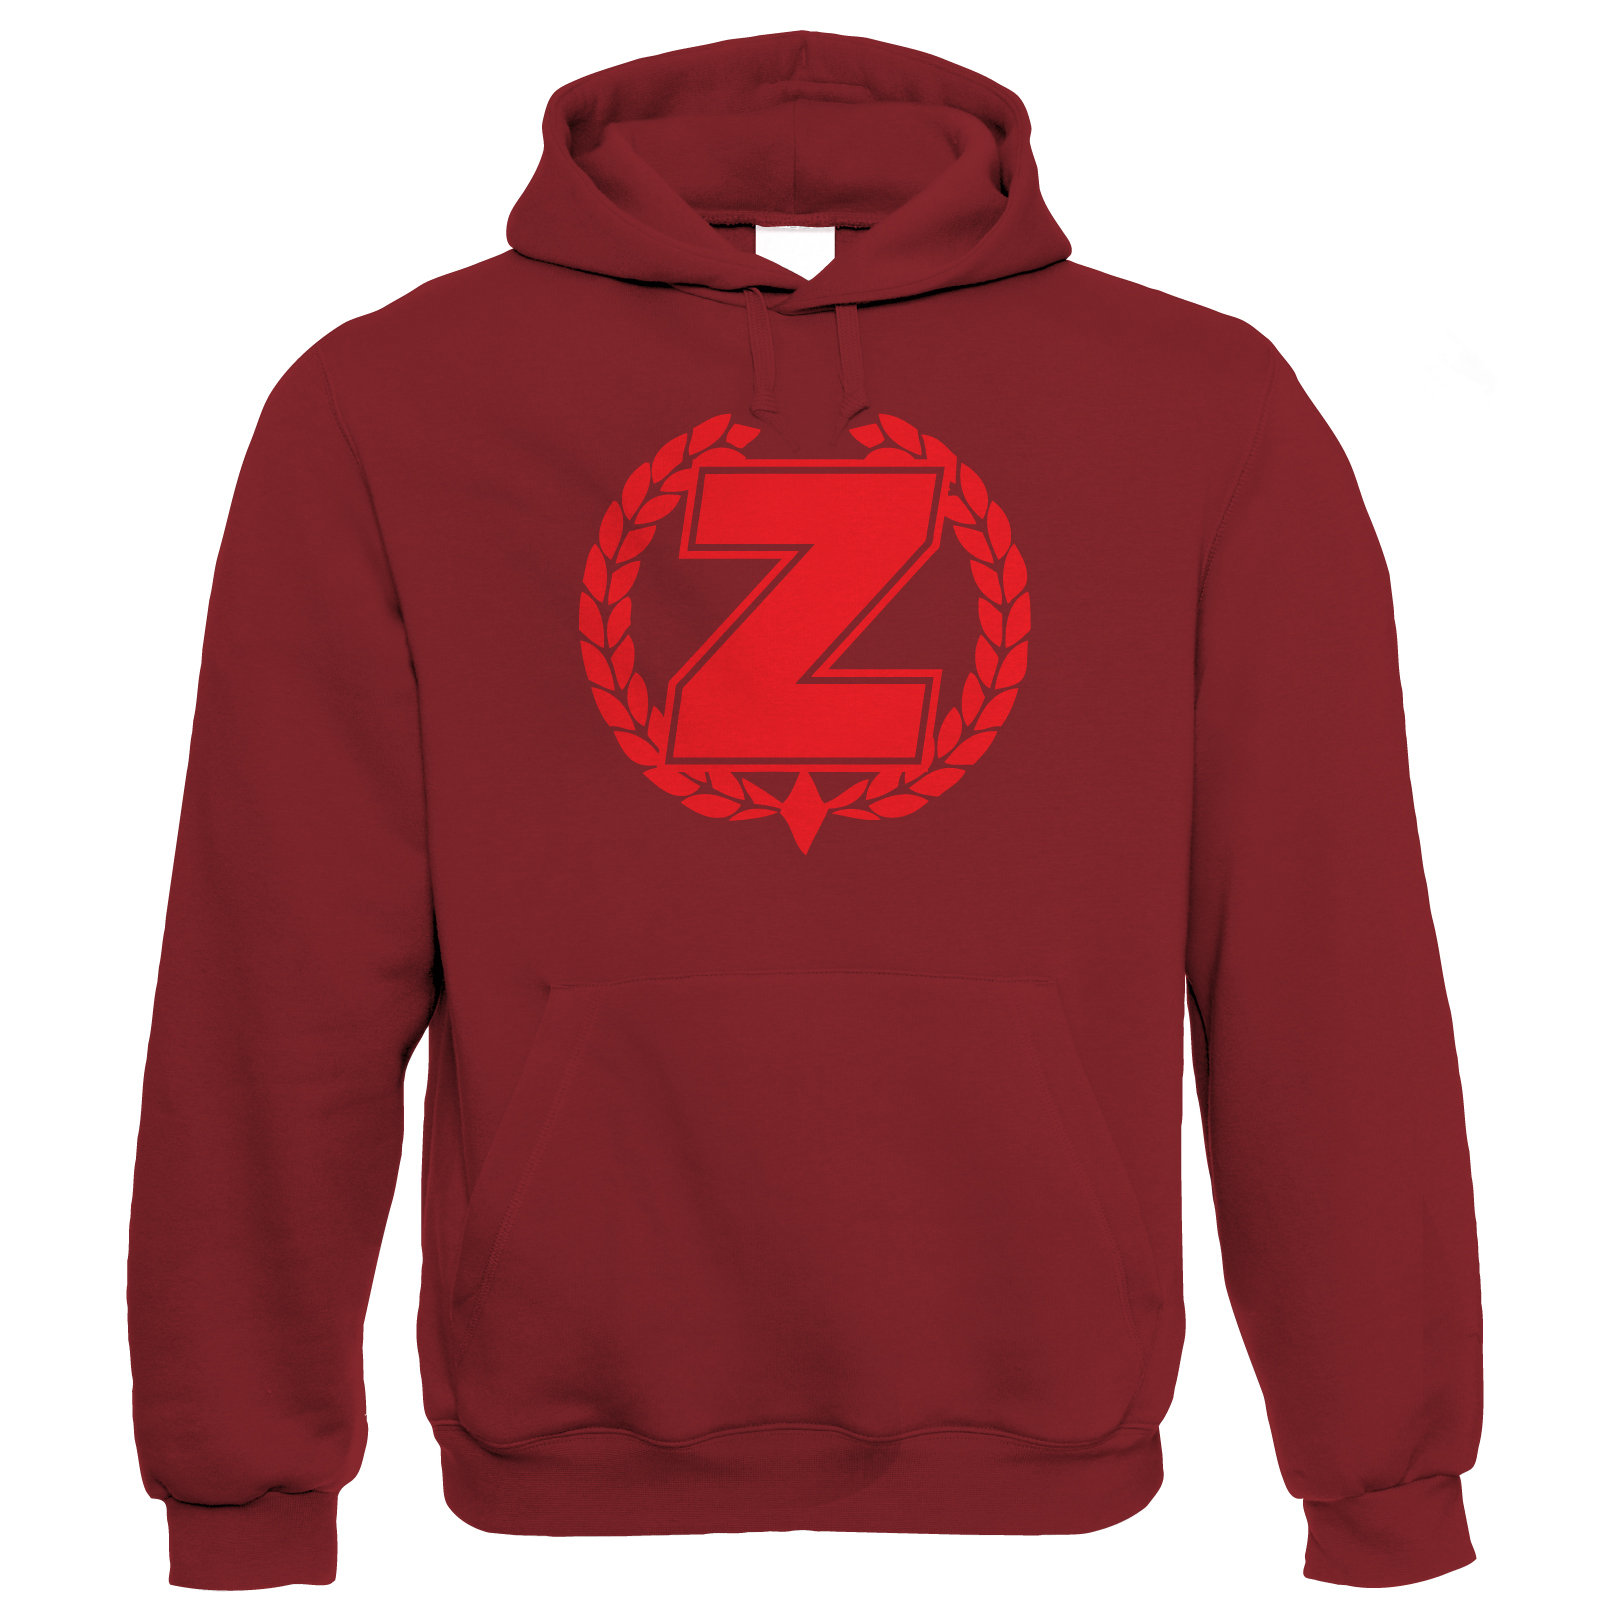 Mens Retro Biker Hoodie Gift for Him Dad Z1 Zephyr